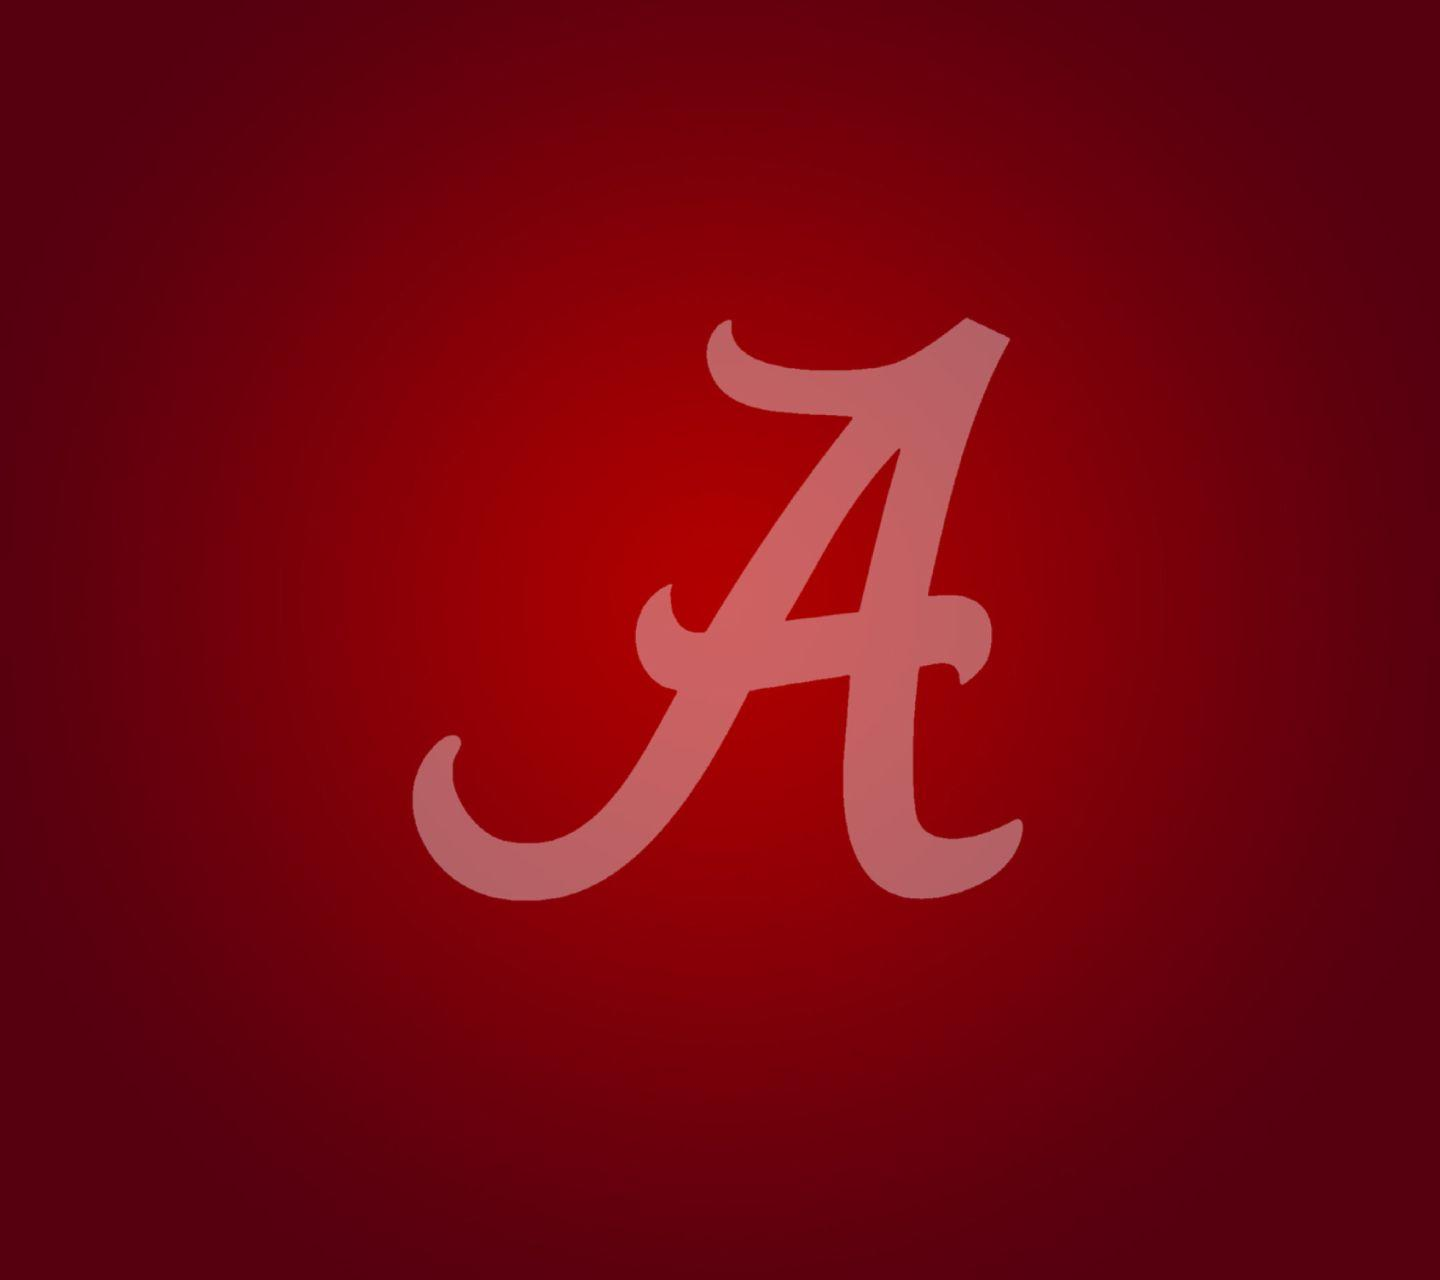 Free Alabama Free Alabama crimson tide phone wallpapers by